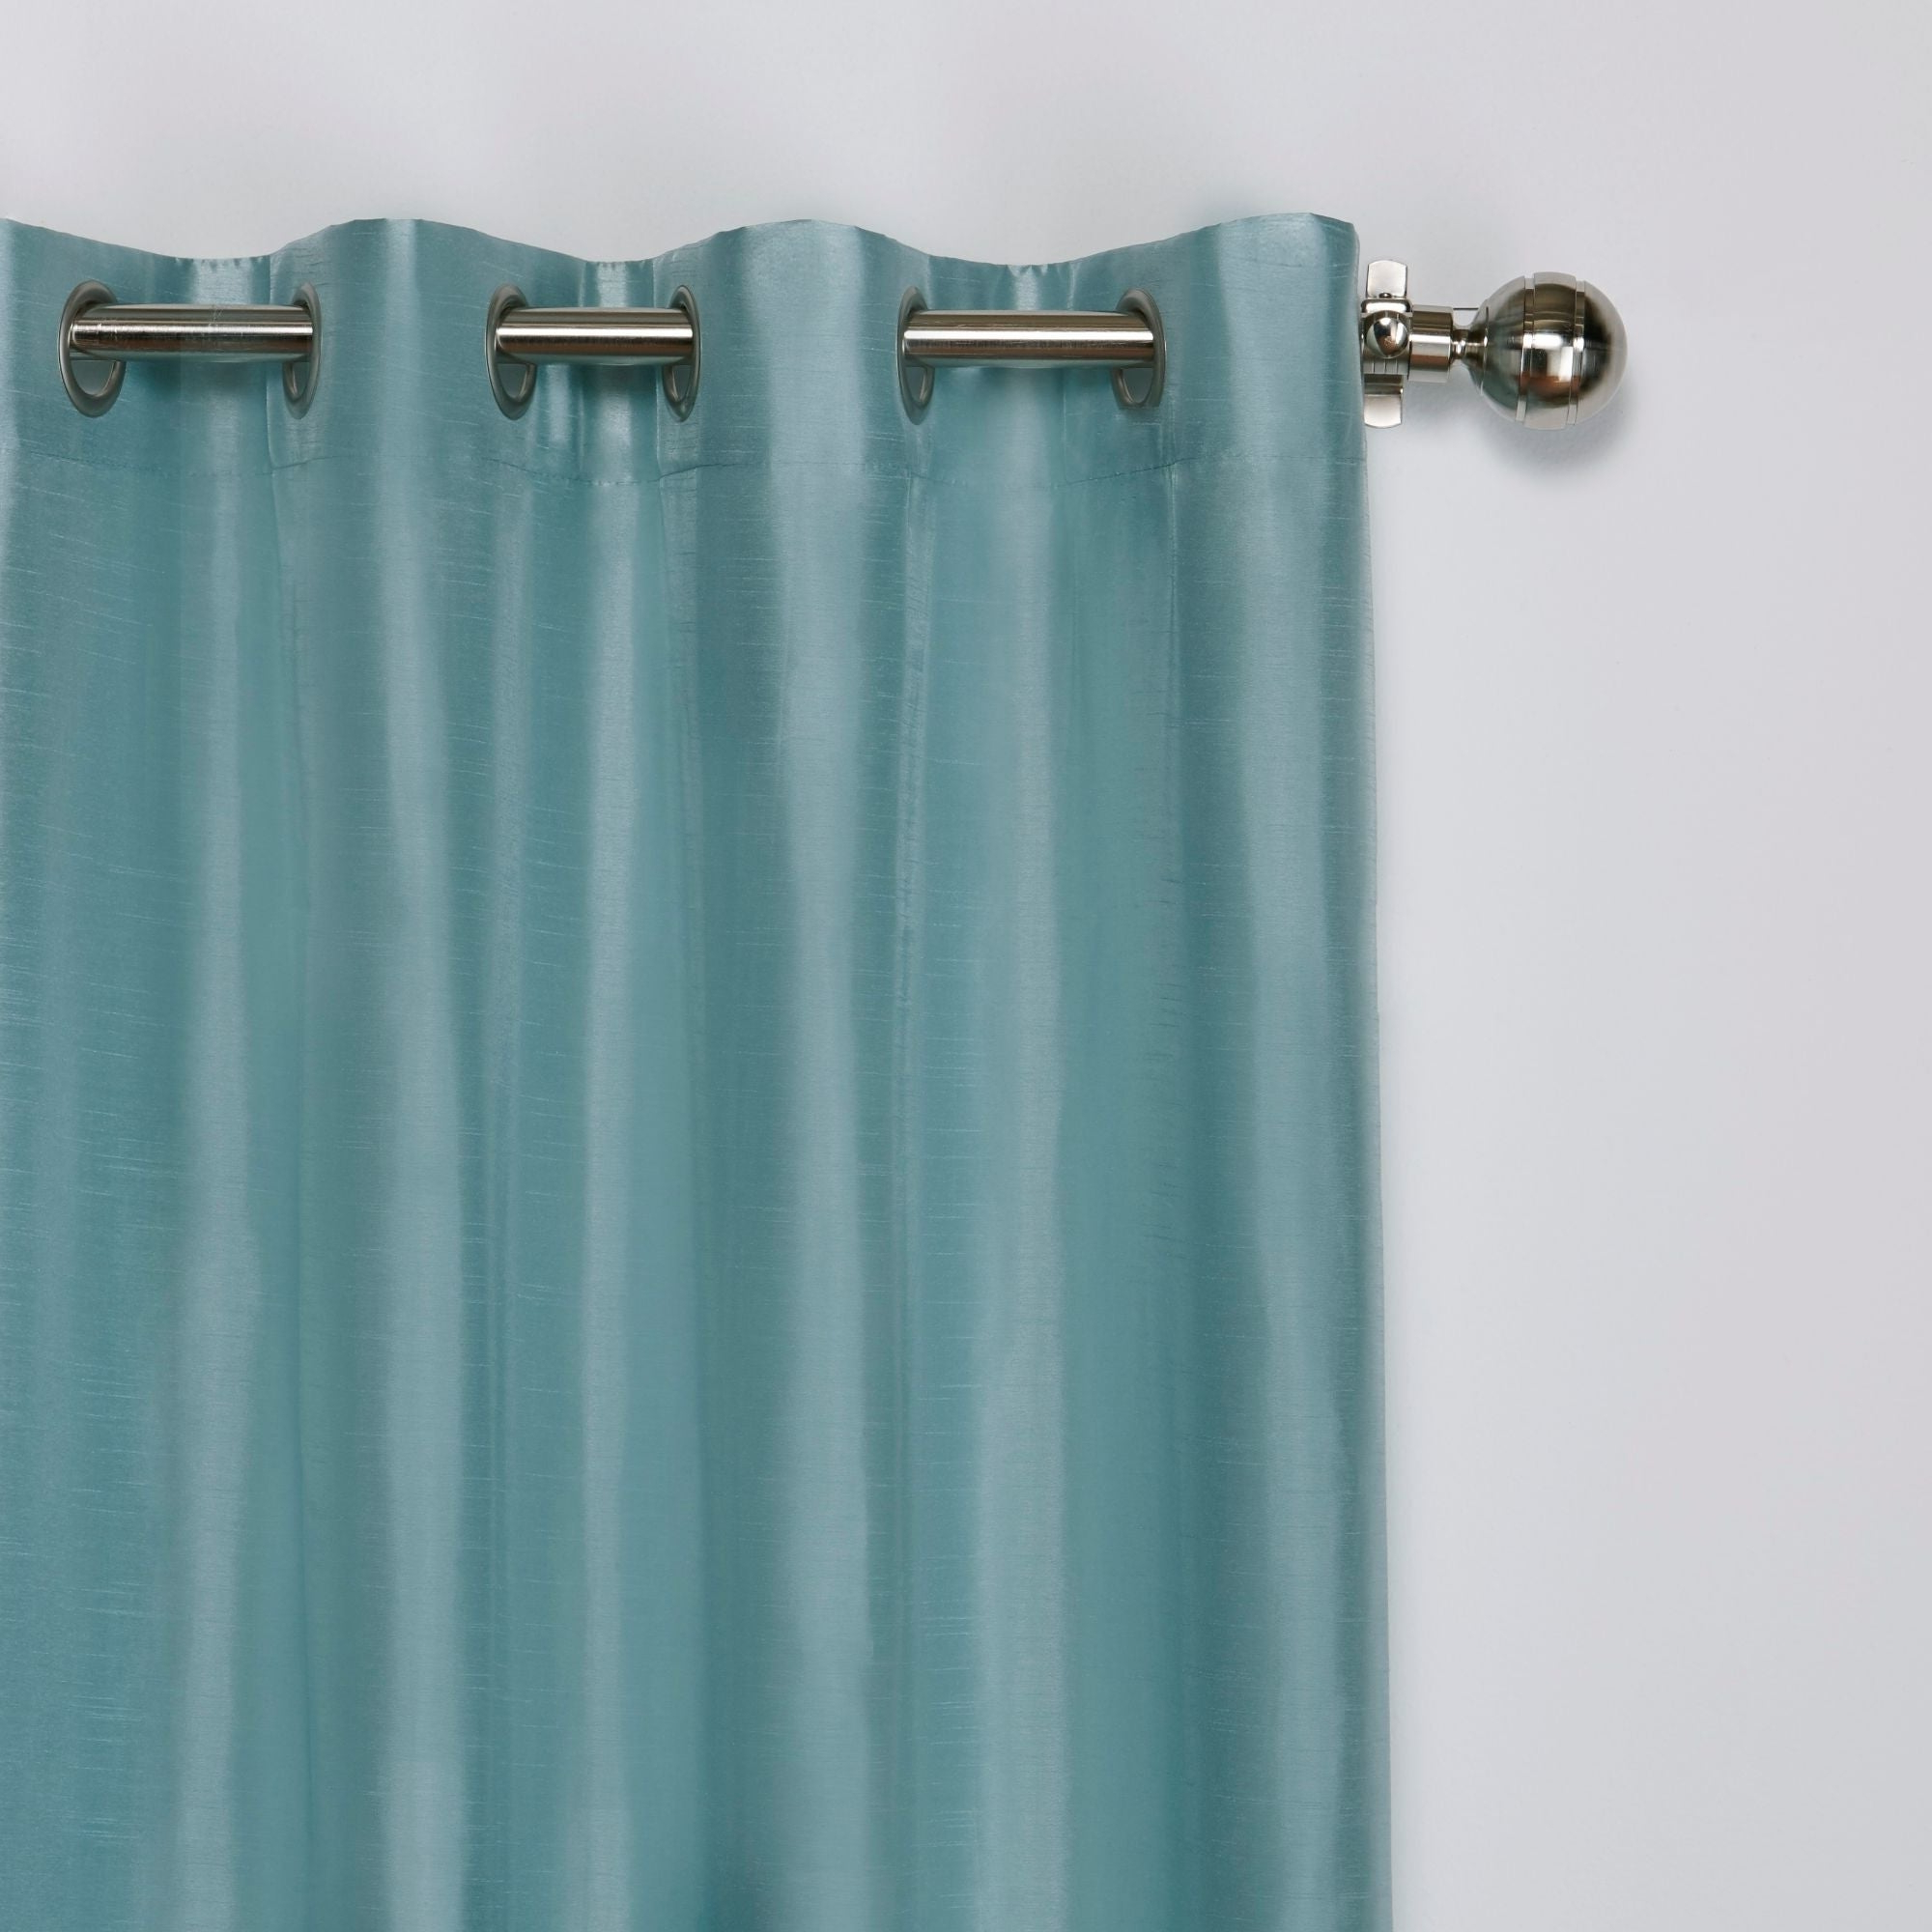 Copper Grove Fulgence Faux Silk Grommet Top Panel Curtains With Preferred Copper Grove Fulgence Faux Silk Grommet Top Panel Curtains – N/ A (View 16 of 20)